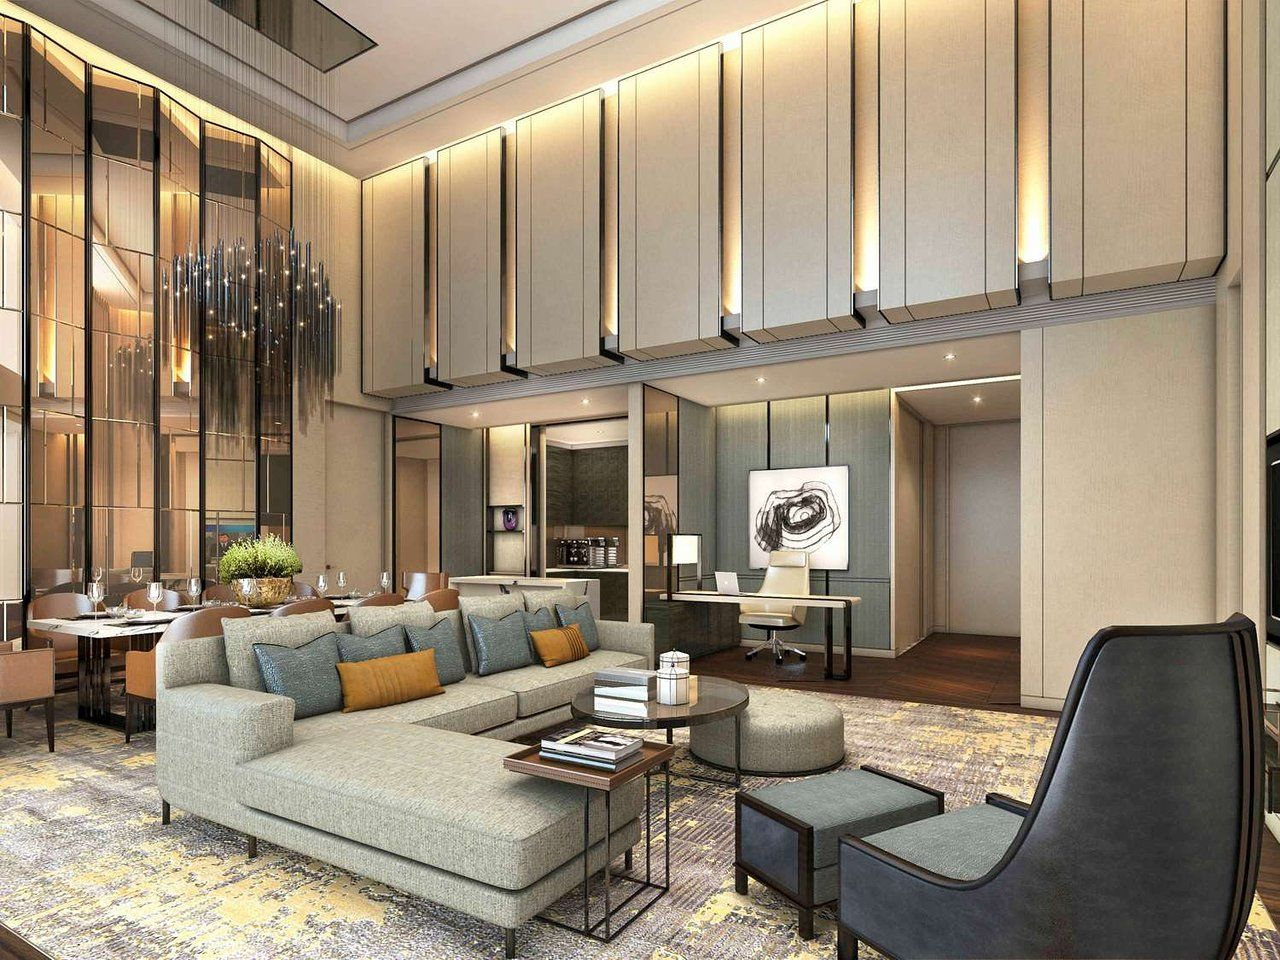 80 Luxury Interior Design Ideas That Will Take Your House To Another Level 80 Modern Houses Interior Apartment Interior Luxury Living Room